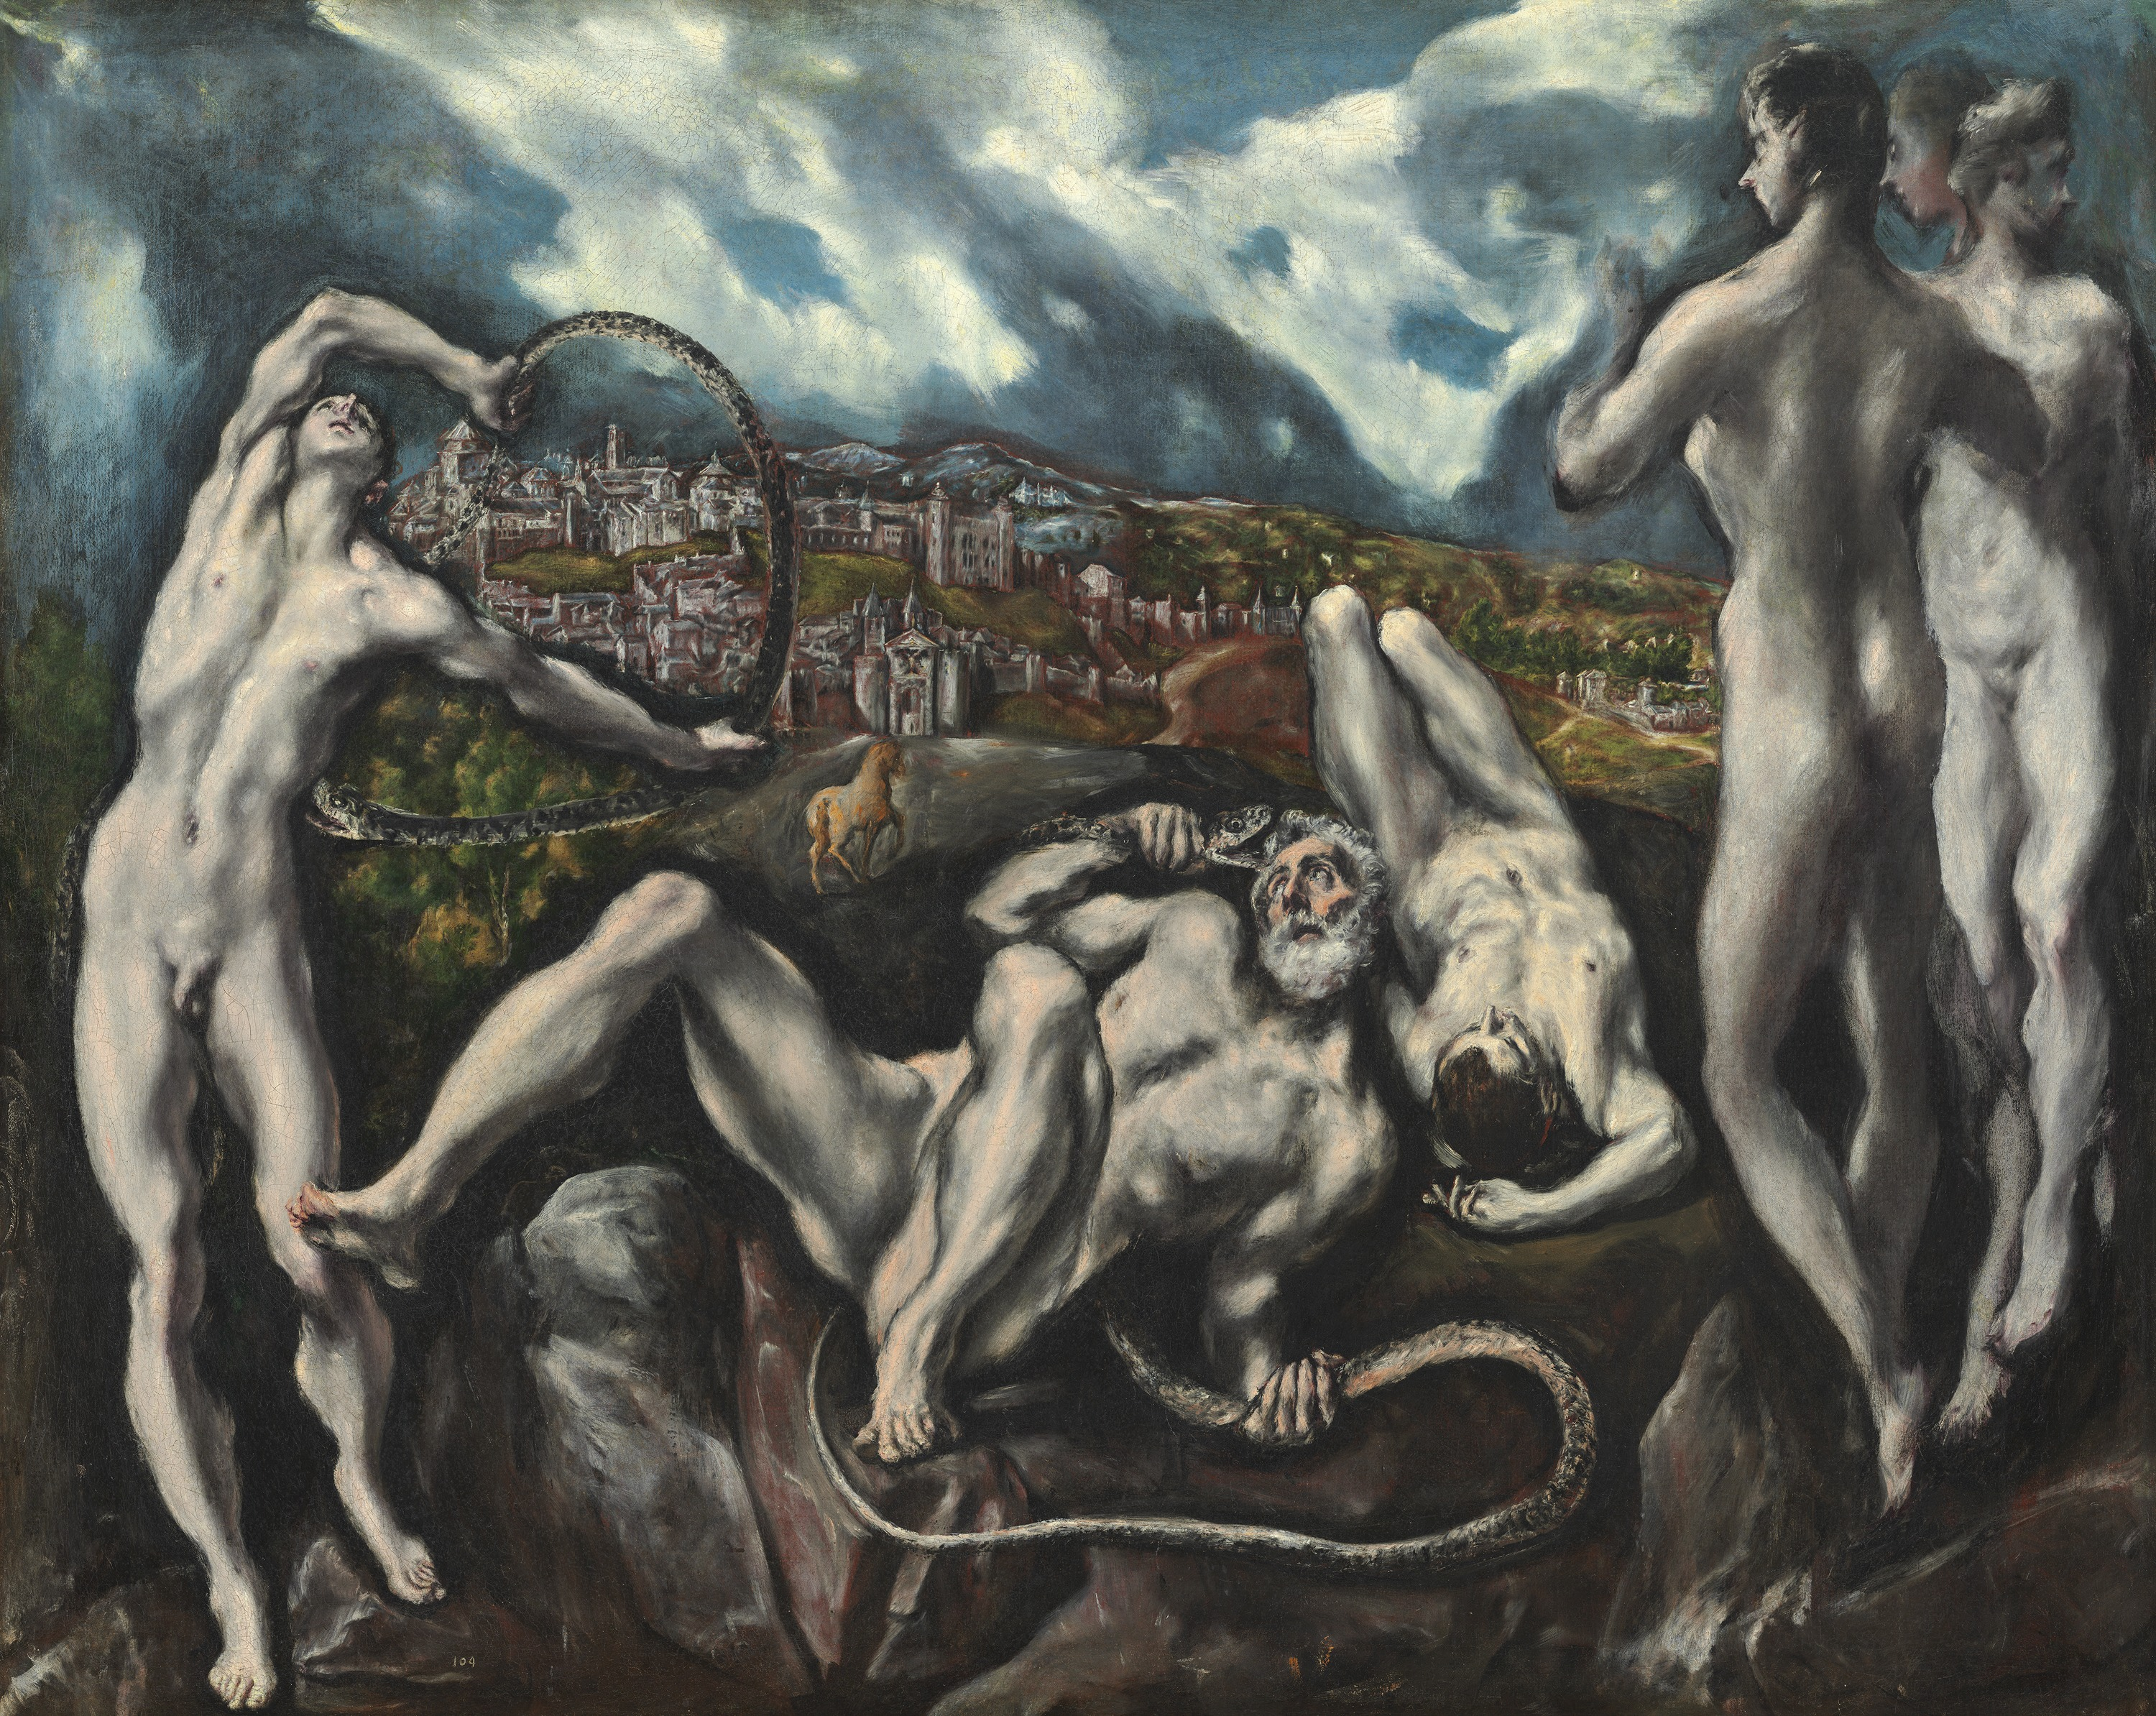 Laocoön  El Greco  Oil on canvas, 137.5 x 172.5 cm  c. 1608 - 1614  Washington, D.C., National Gallery of Art. Samuel H. Kress Collection. 1946.18.1